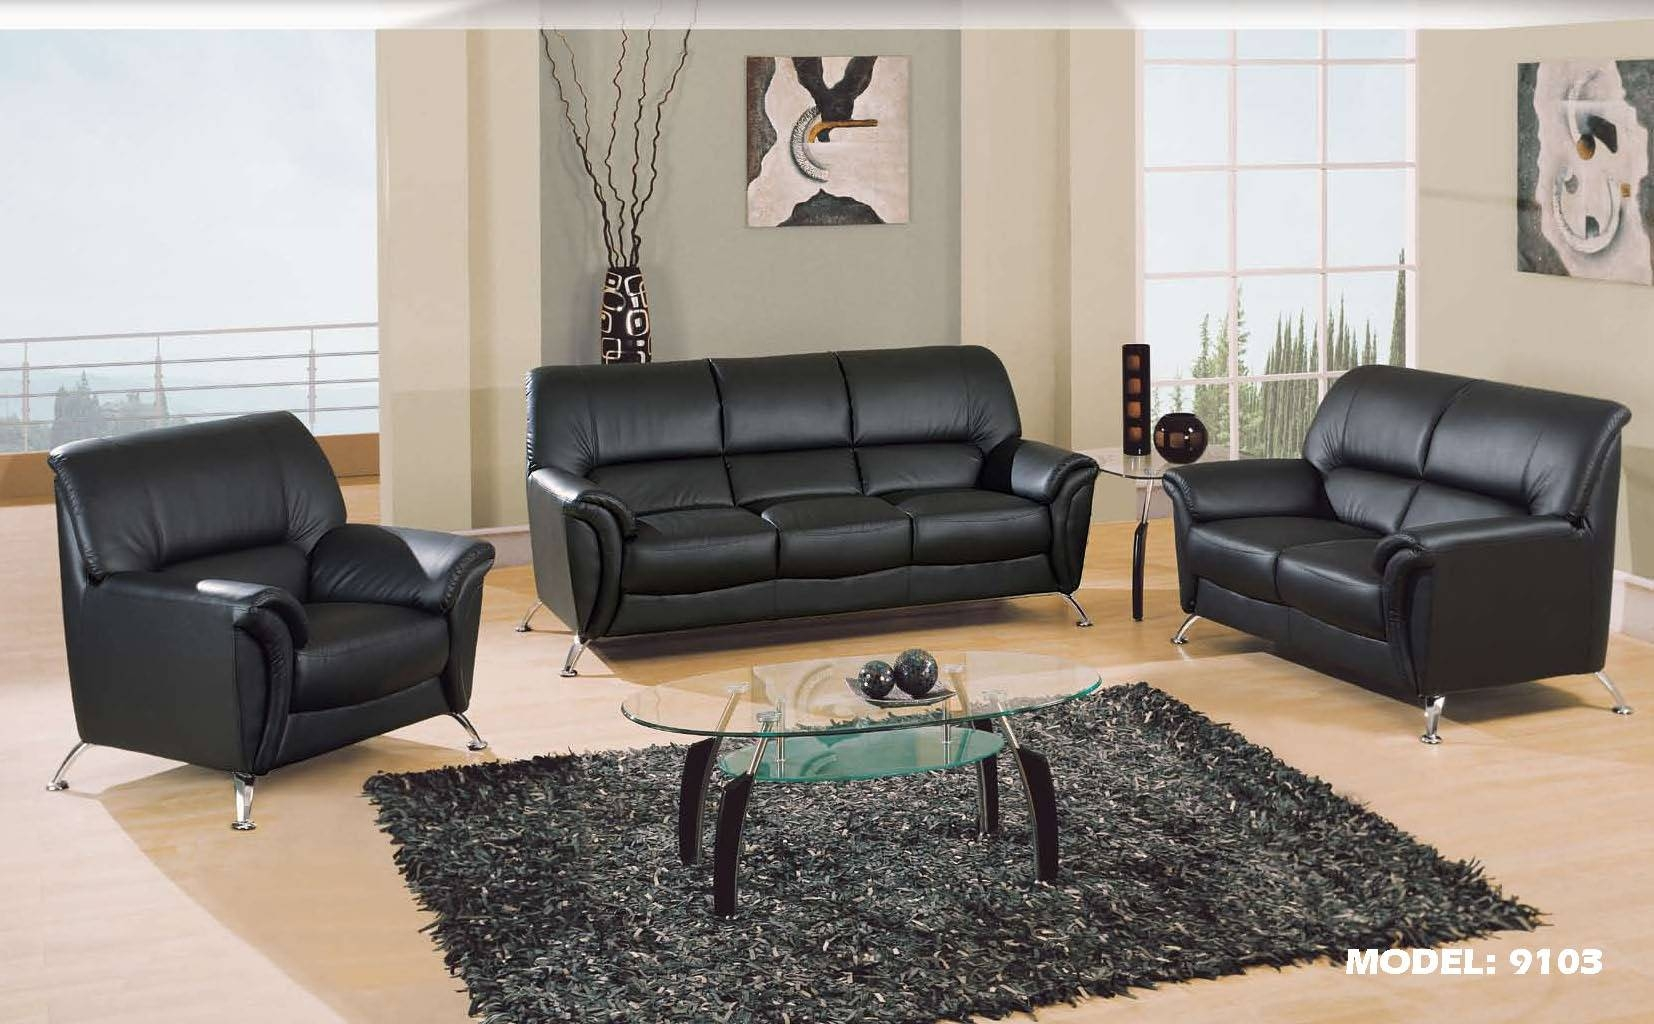 Sofas Center : Emejing Black Leather Couch Set Contemporary with Contemporary Black Leather Sofas (Image 23 of 30)